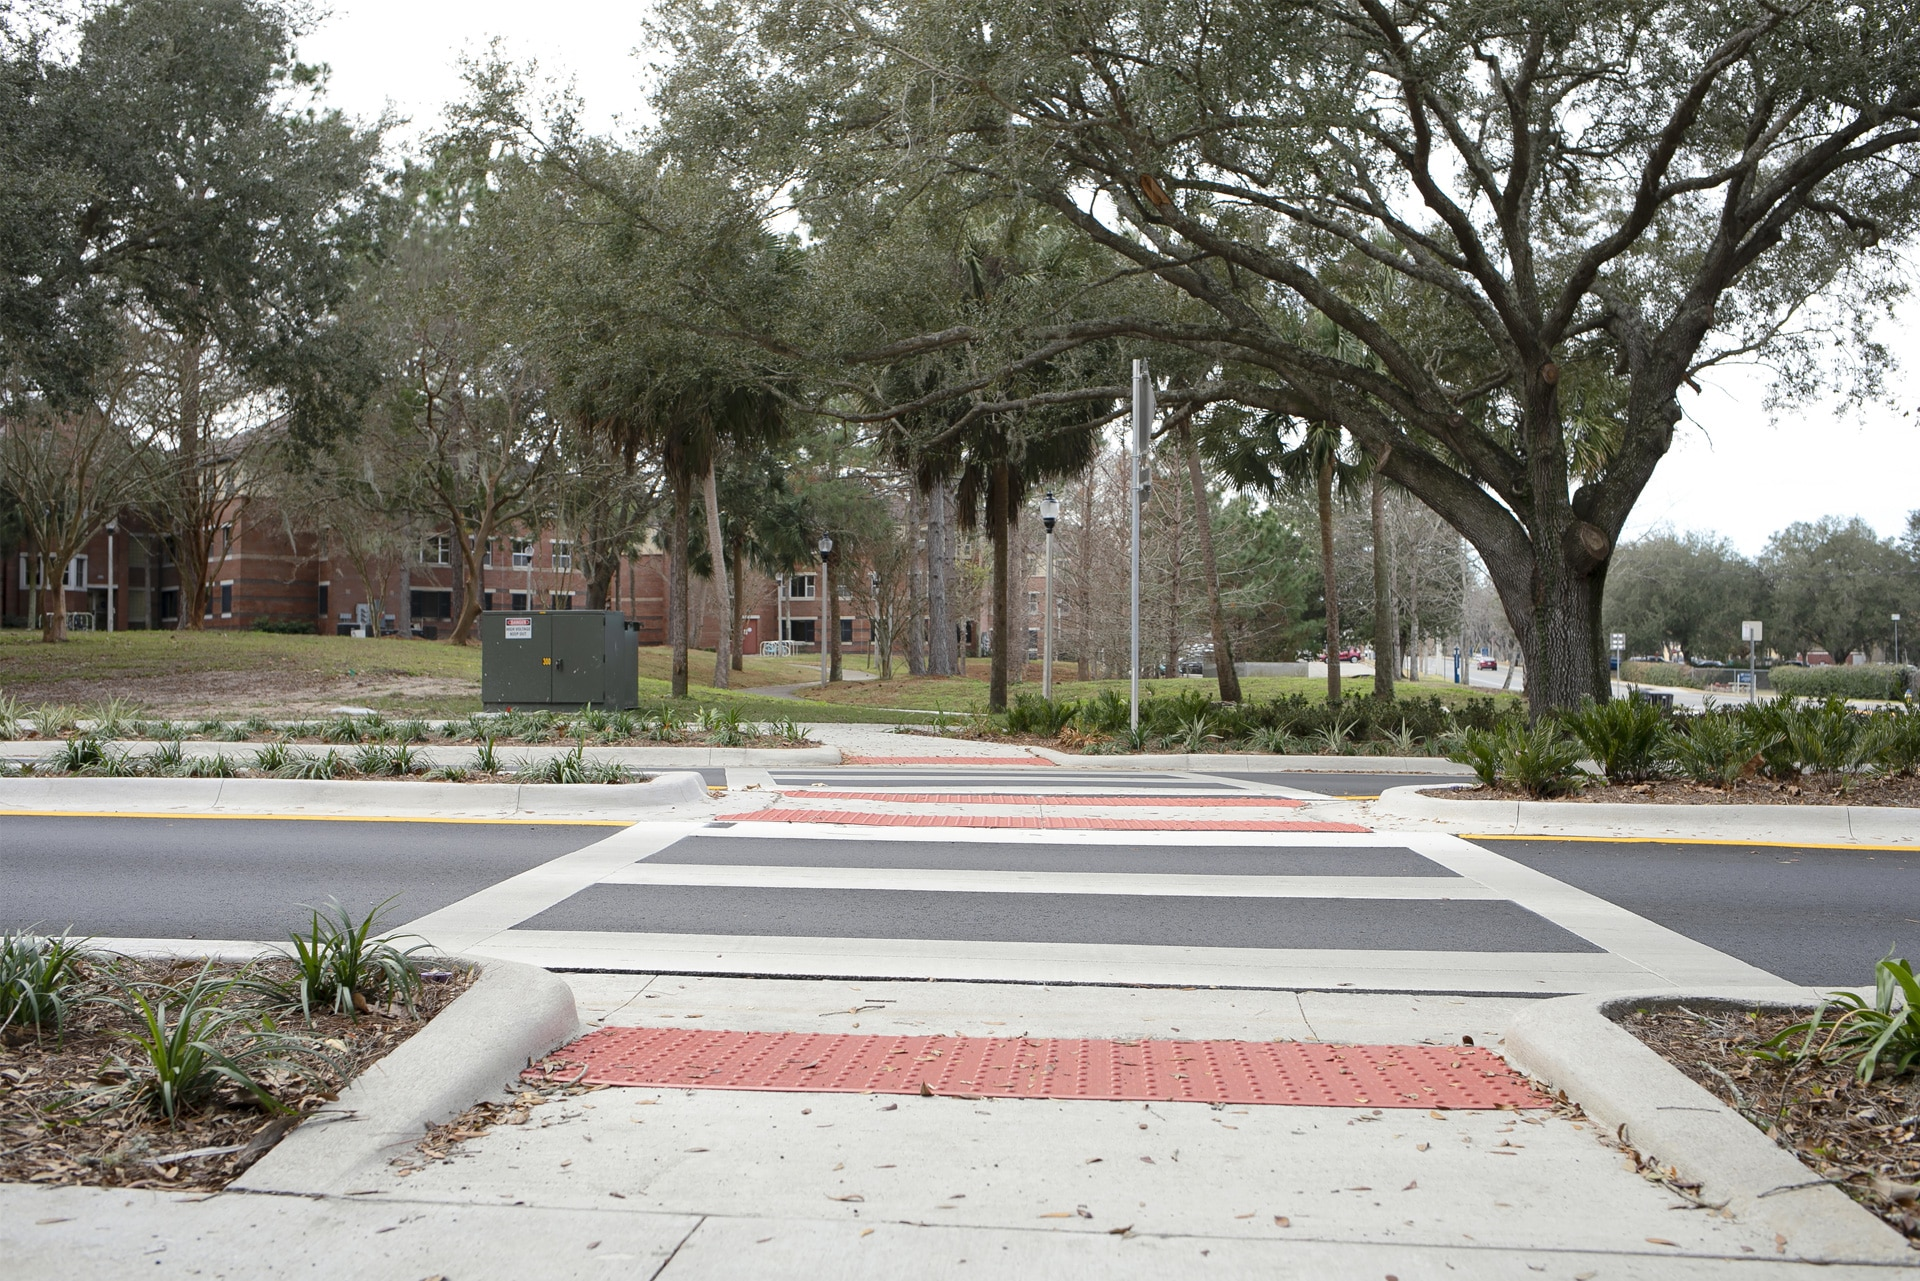 crosswalk at intersection of Radio Road and Museum Drive in Gainesville FL